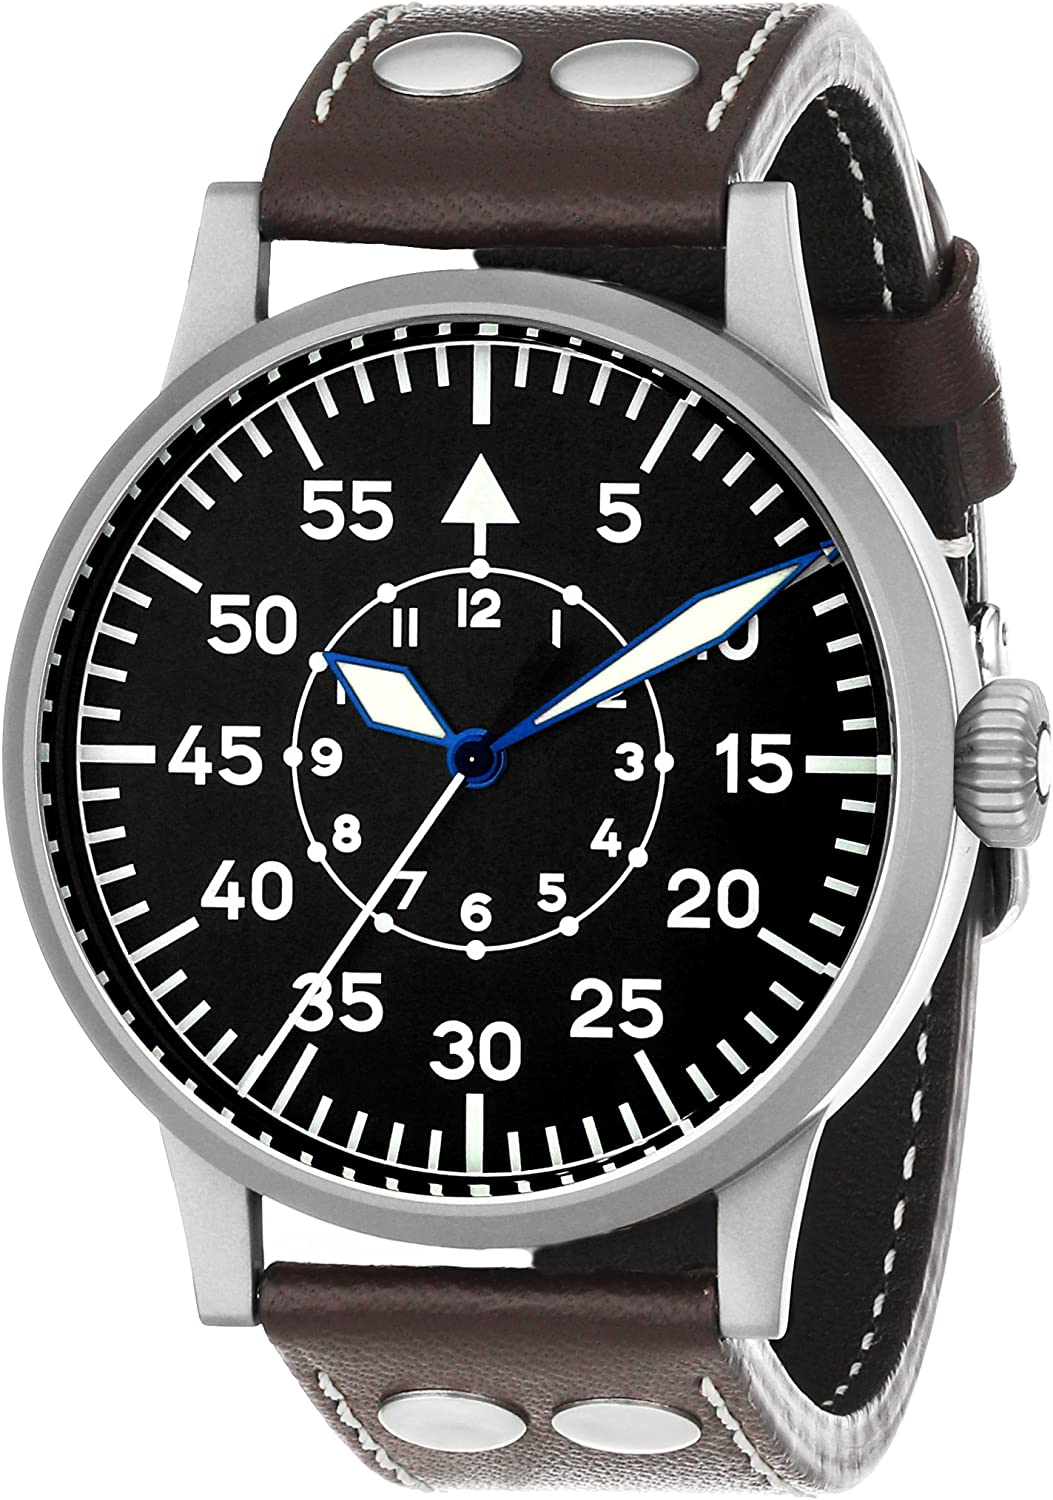 Laco 1925 Men s 861751 Laco 1925 Pilot Classic Stainless Steel Mechanical Watch with Brown Leather Band